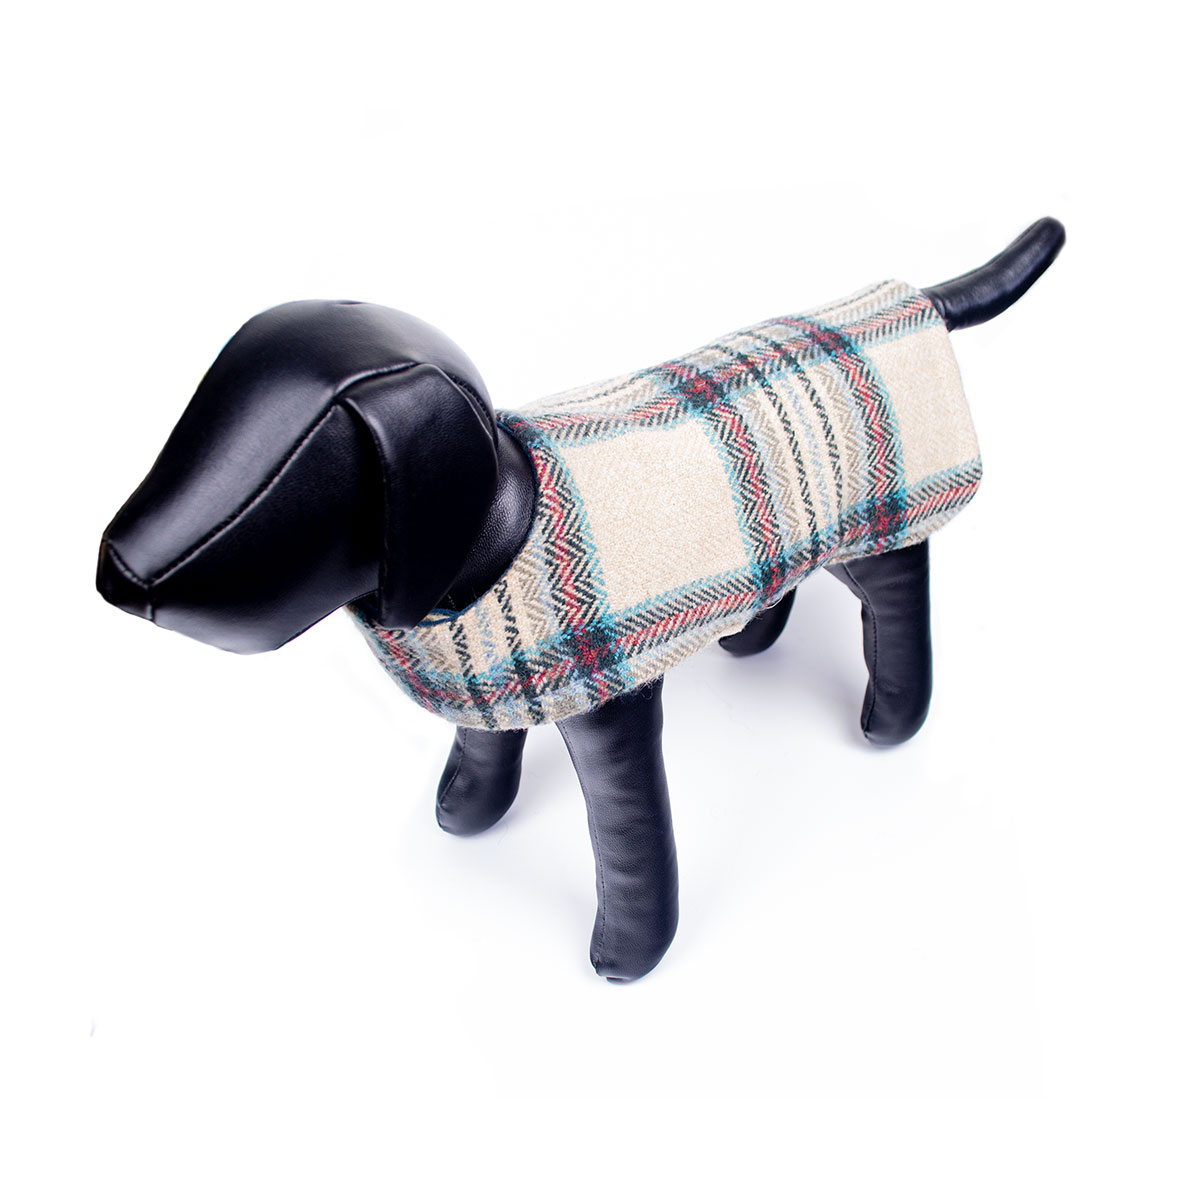 Irish Lambs Wool Dog Sweaters